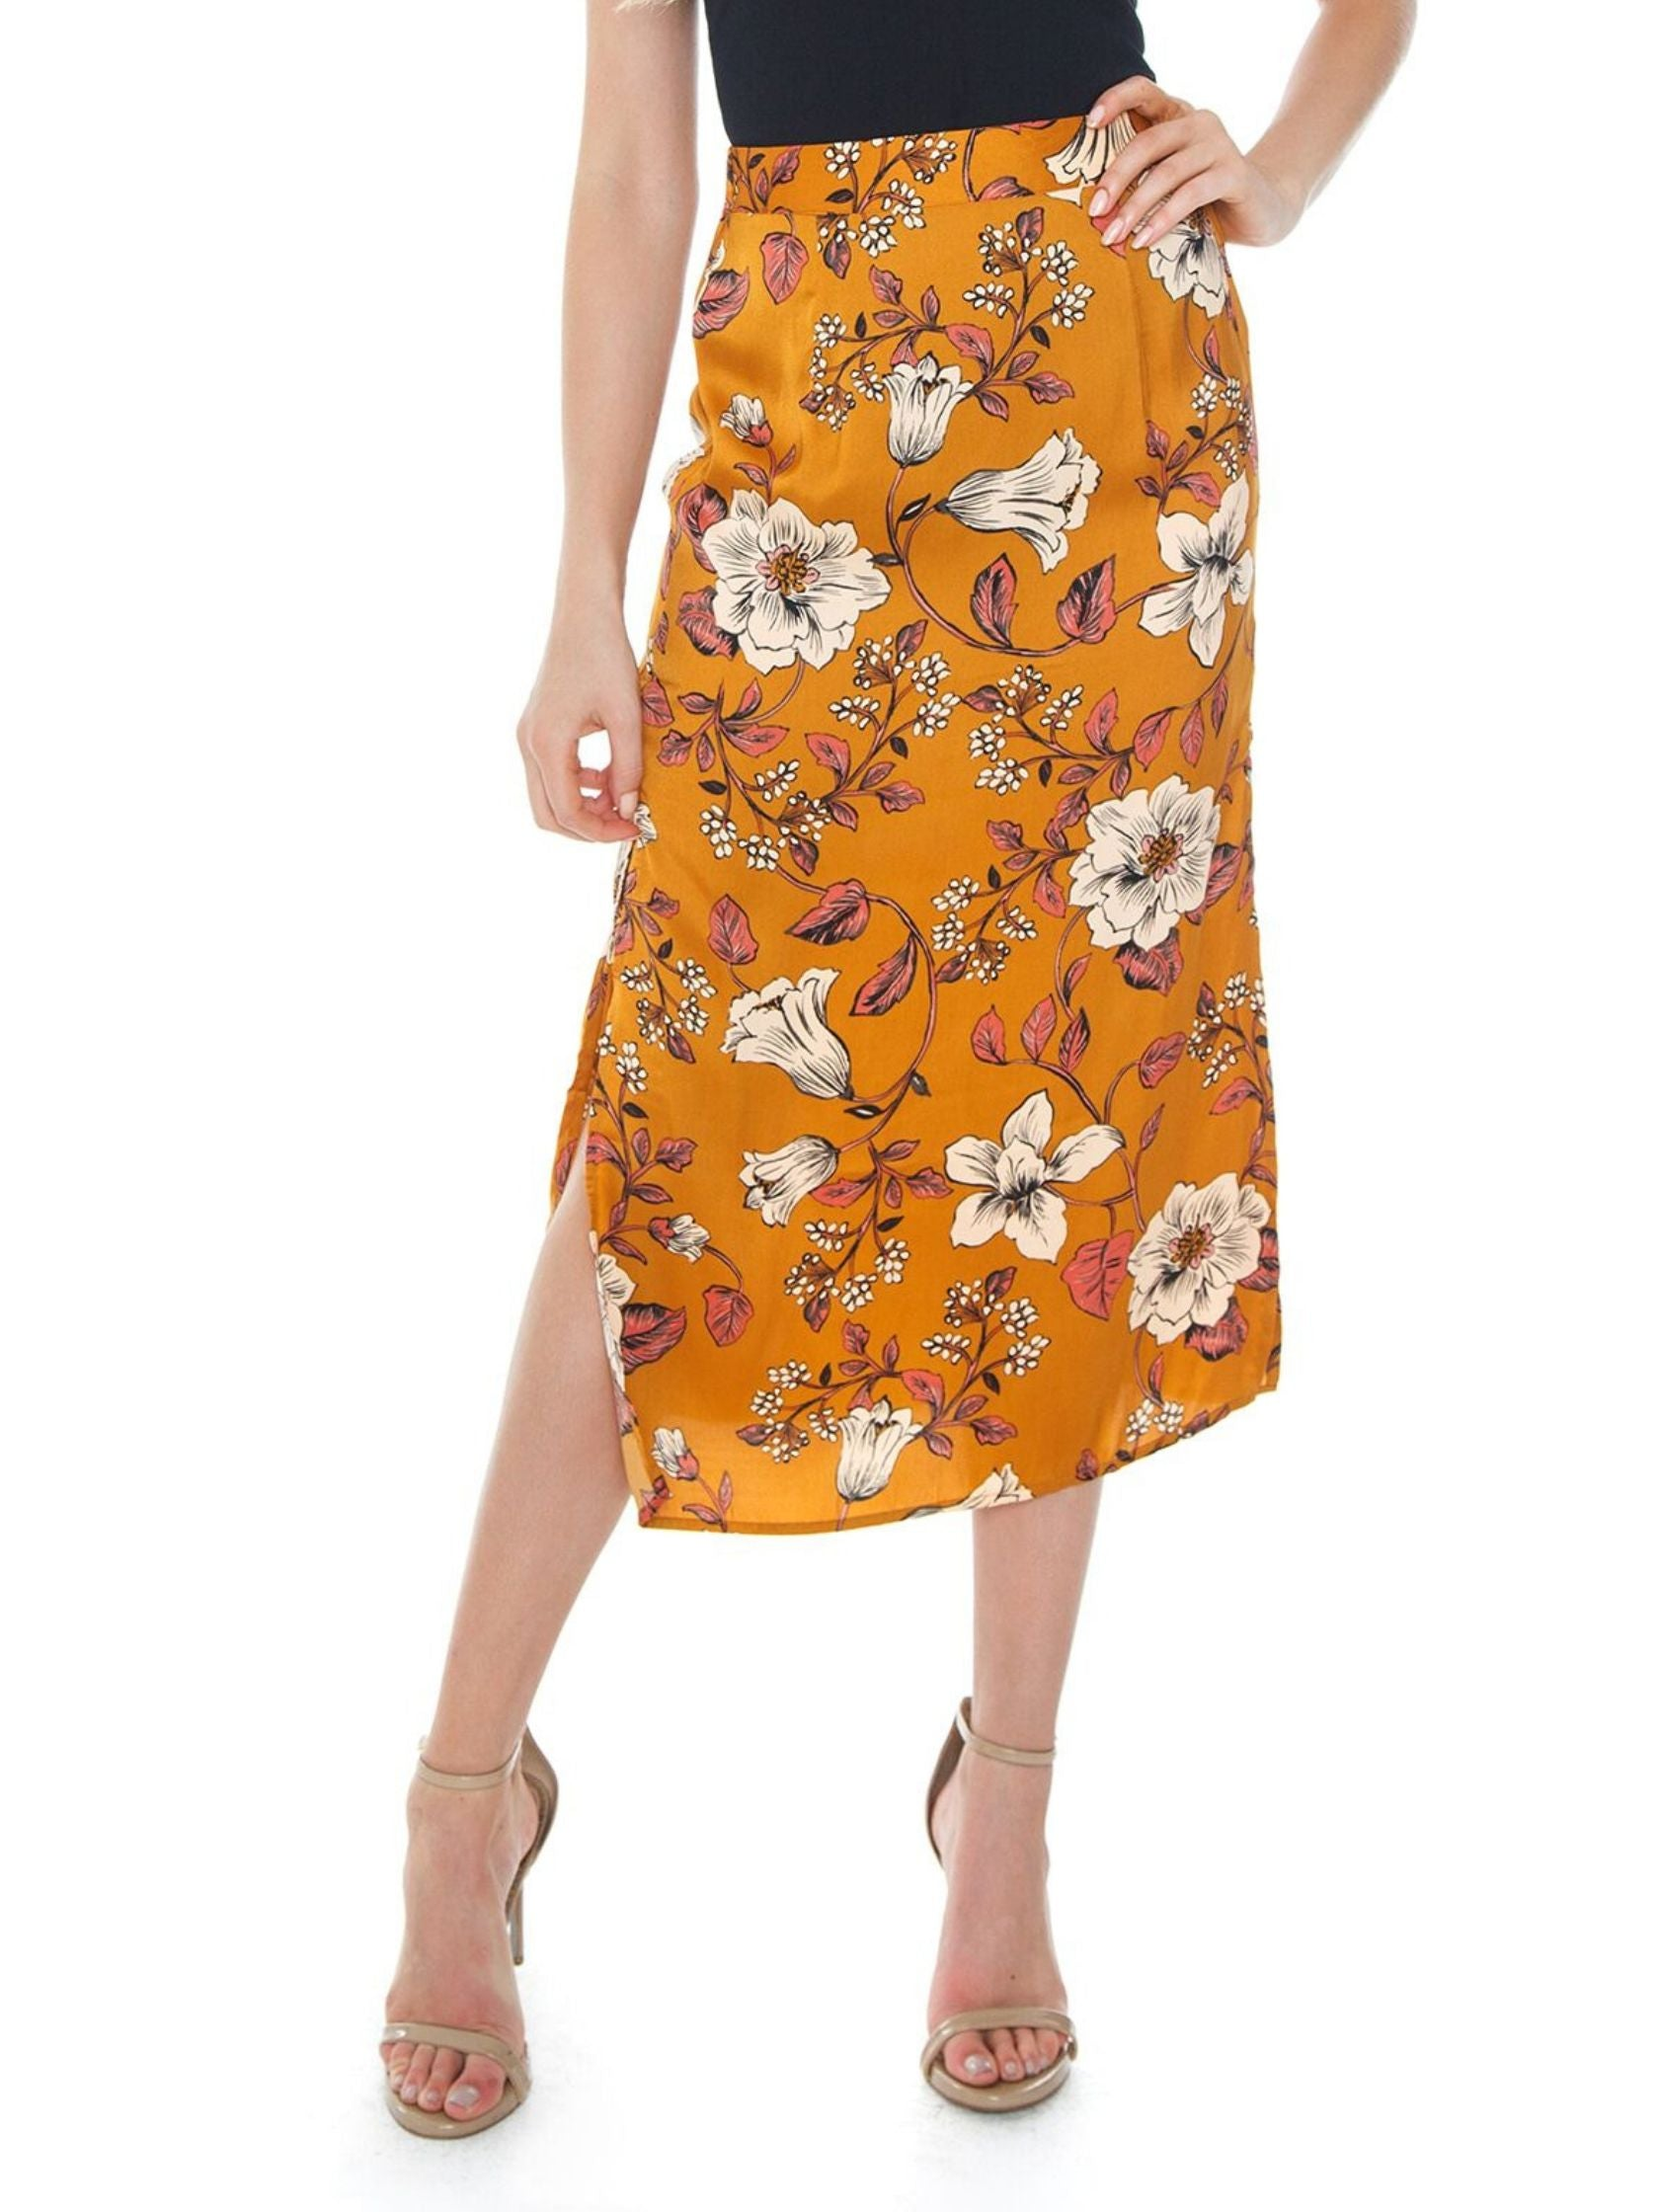 Woman wearing a skirt rental from SALTWATER LUXE called Gia Midi Skirt